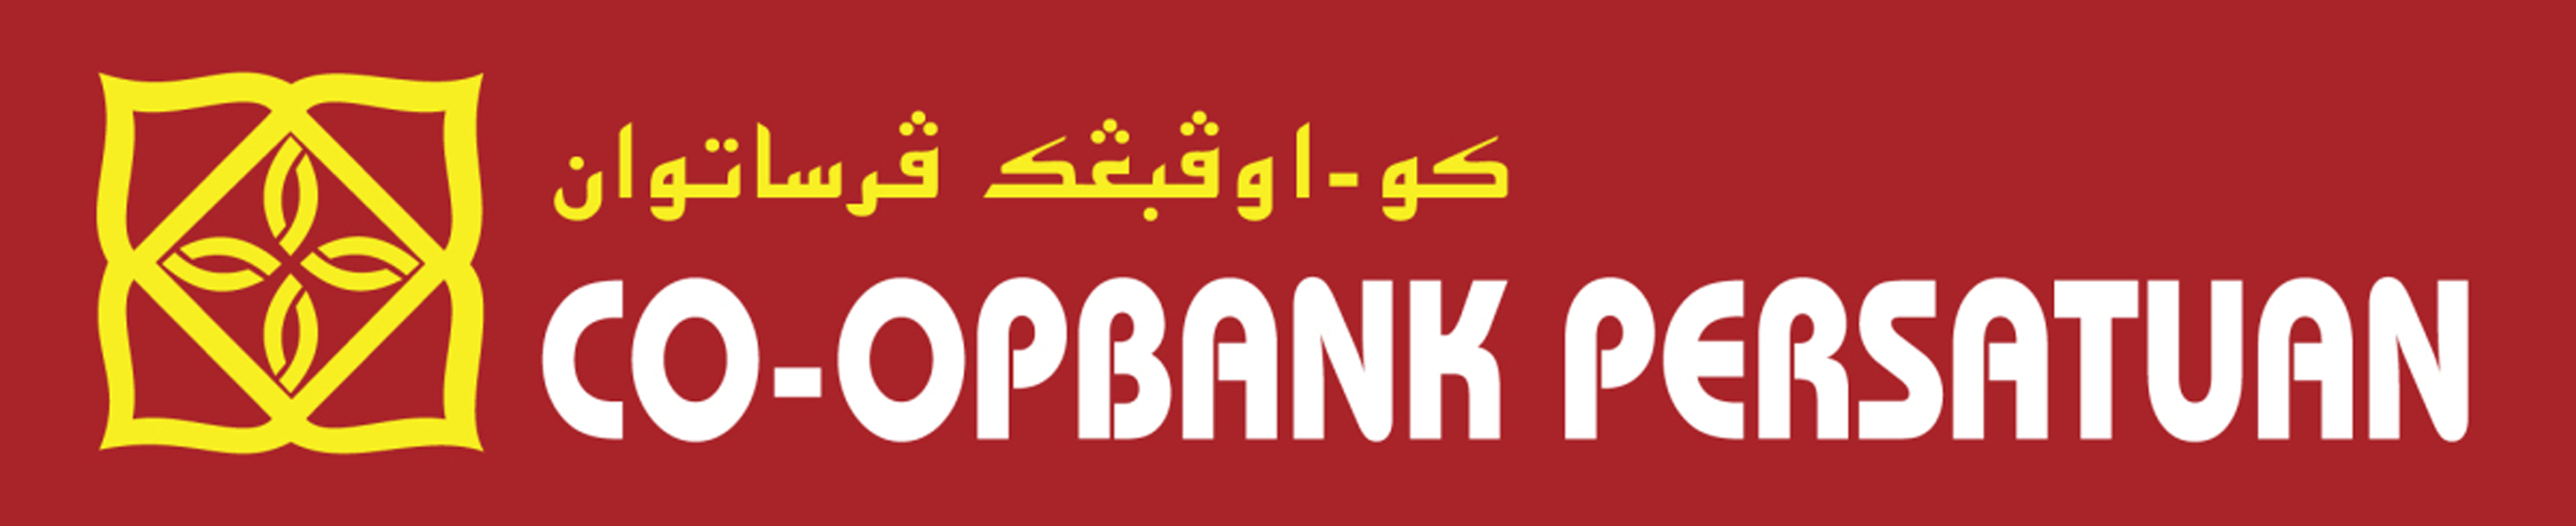 Co-op Bank Persatuan